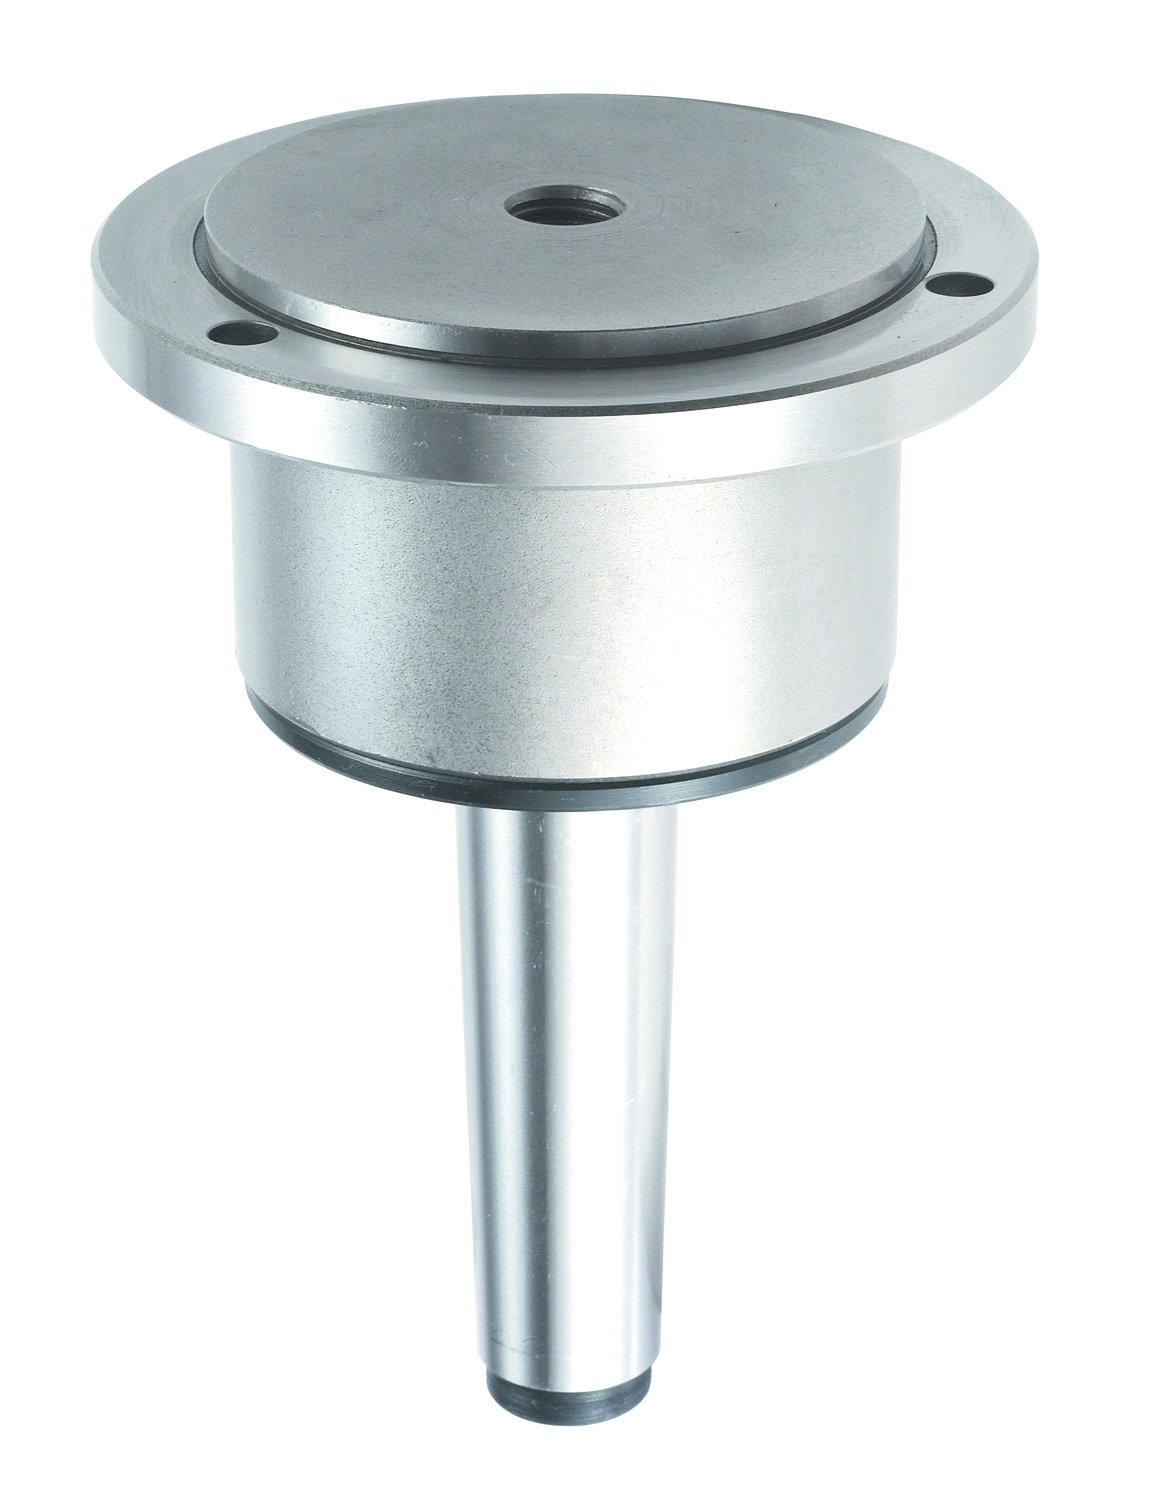 MT3 X 100MM TAPER SHANK CHUCK REVOLVING BED FOR 3'' CHUCKS (3900-6021) by HHIP